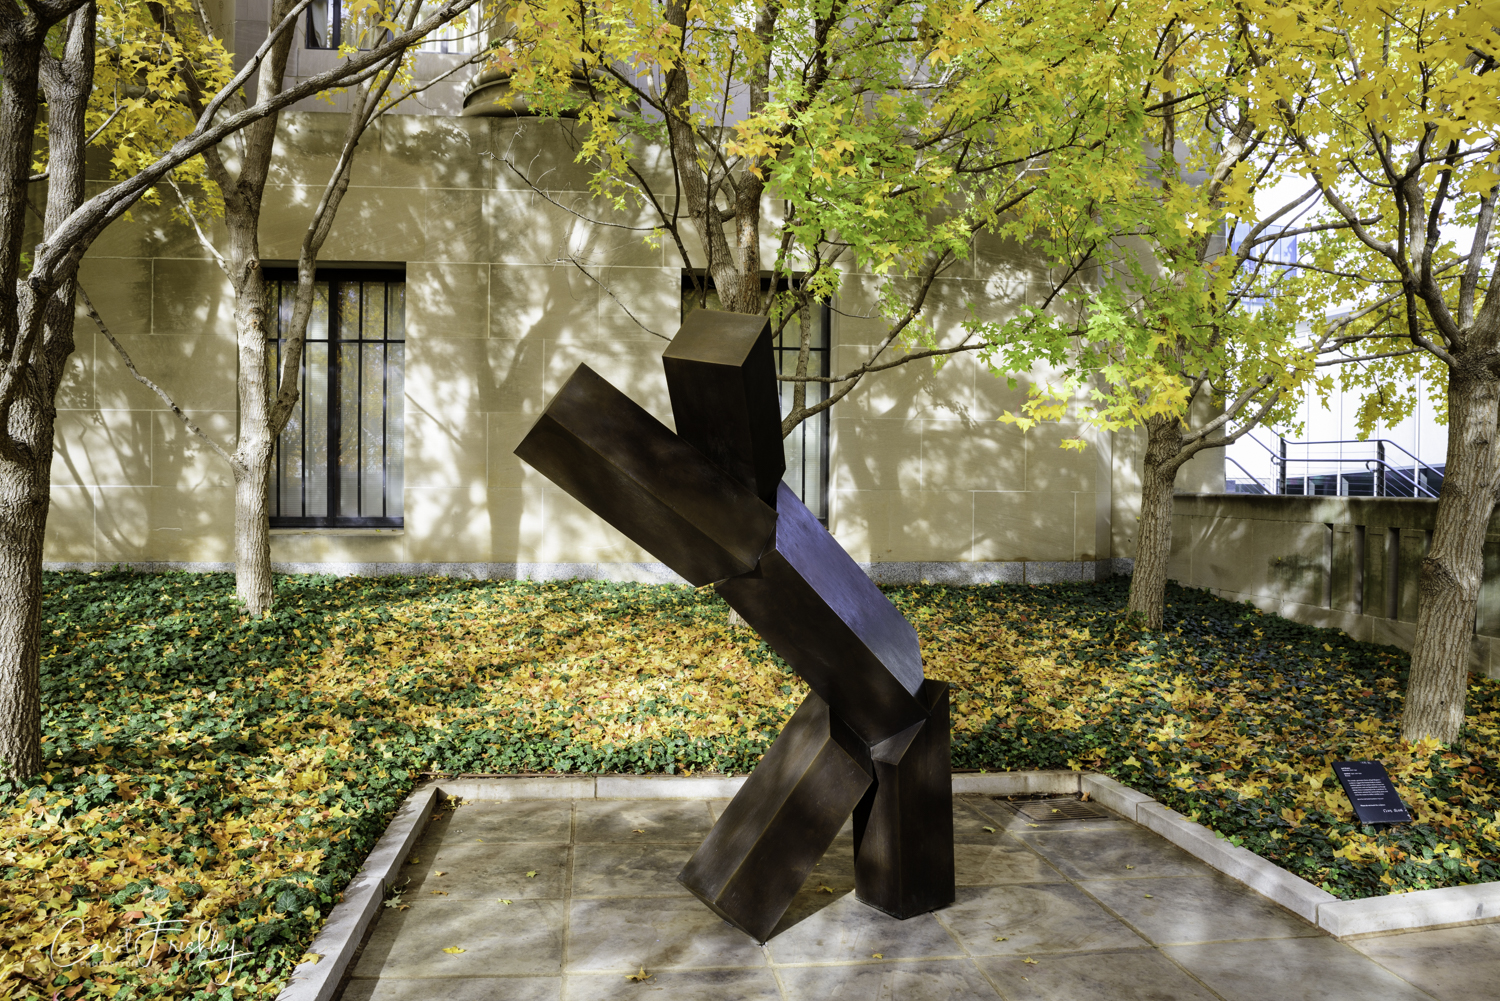 """This simple, geometric forms of Joel Shapiro's sculpture suggest the human body in motion.   Untitled  appears from certain views to have two upraised arms and one leg extended, as though taking a bow or preparing to do a cartwheel.  Its open form activates the surrounding space and invite the viewer to strike a similar pose.  Joel Shapiro, Amerian born 1941, cast in 1992 of bronze."